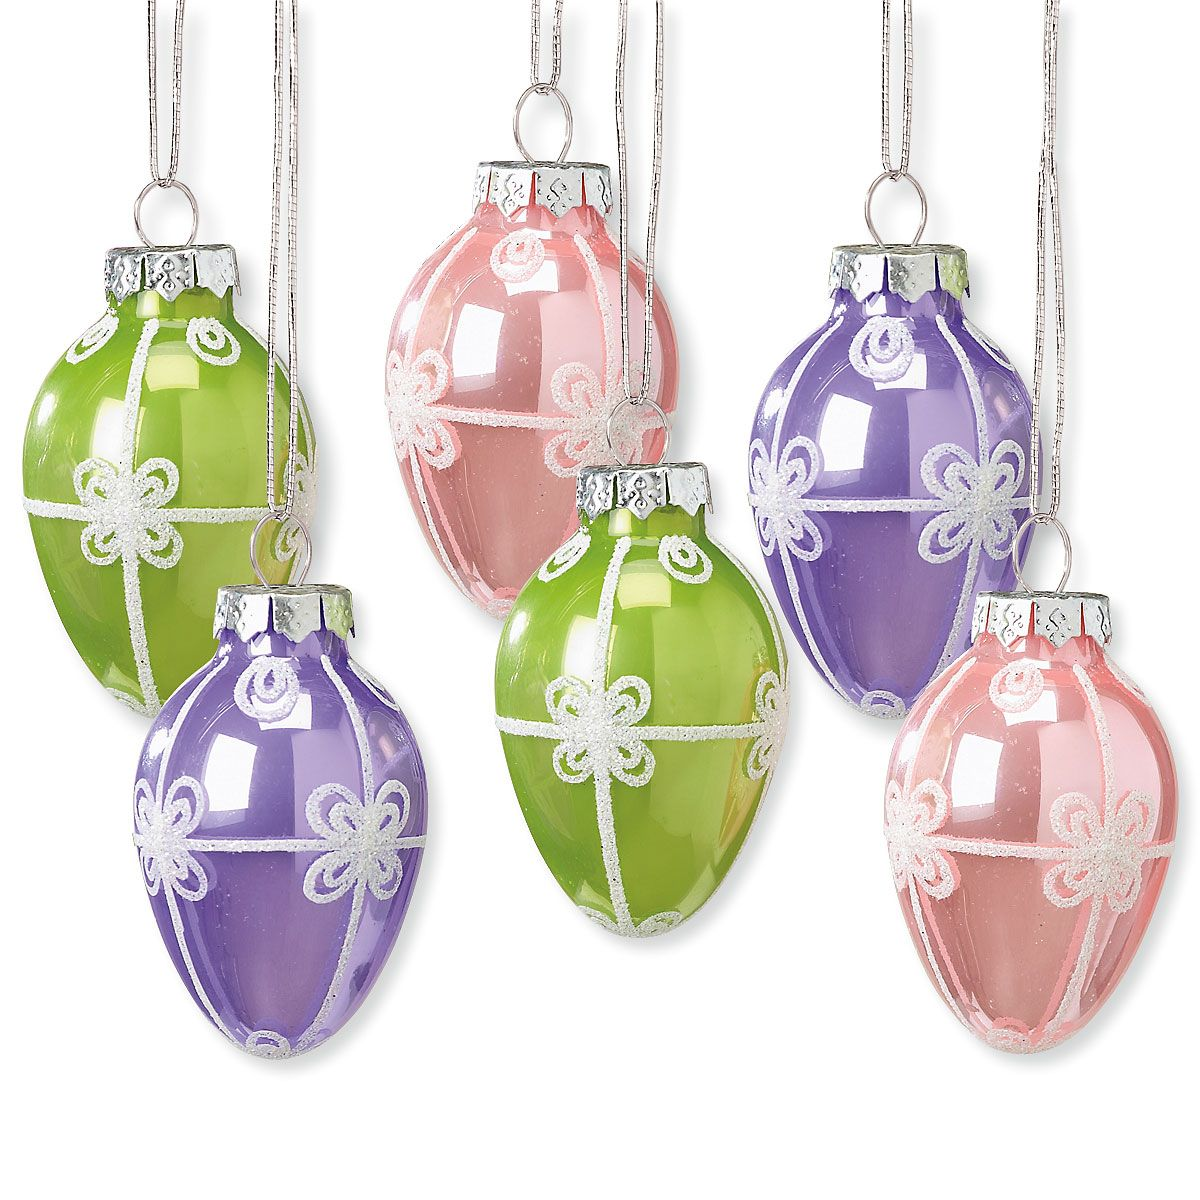 Glass Egg Ornaments